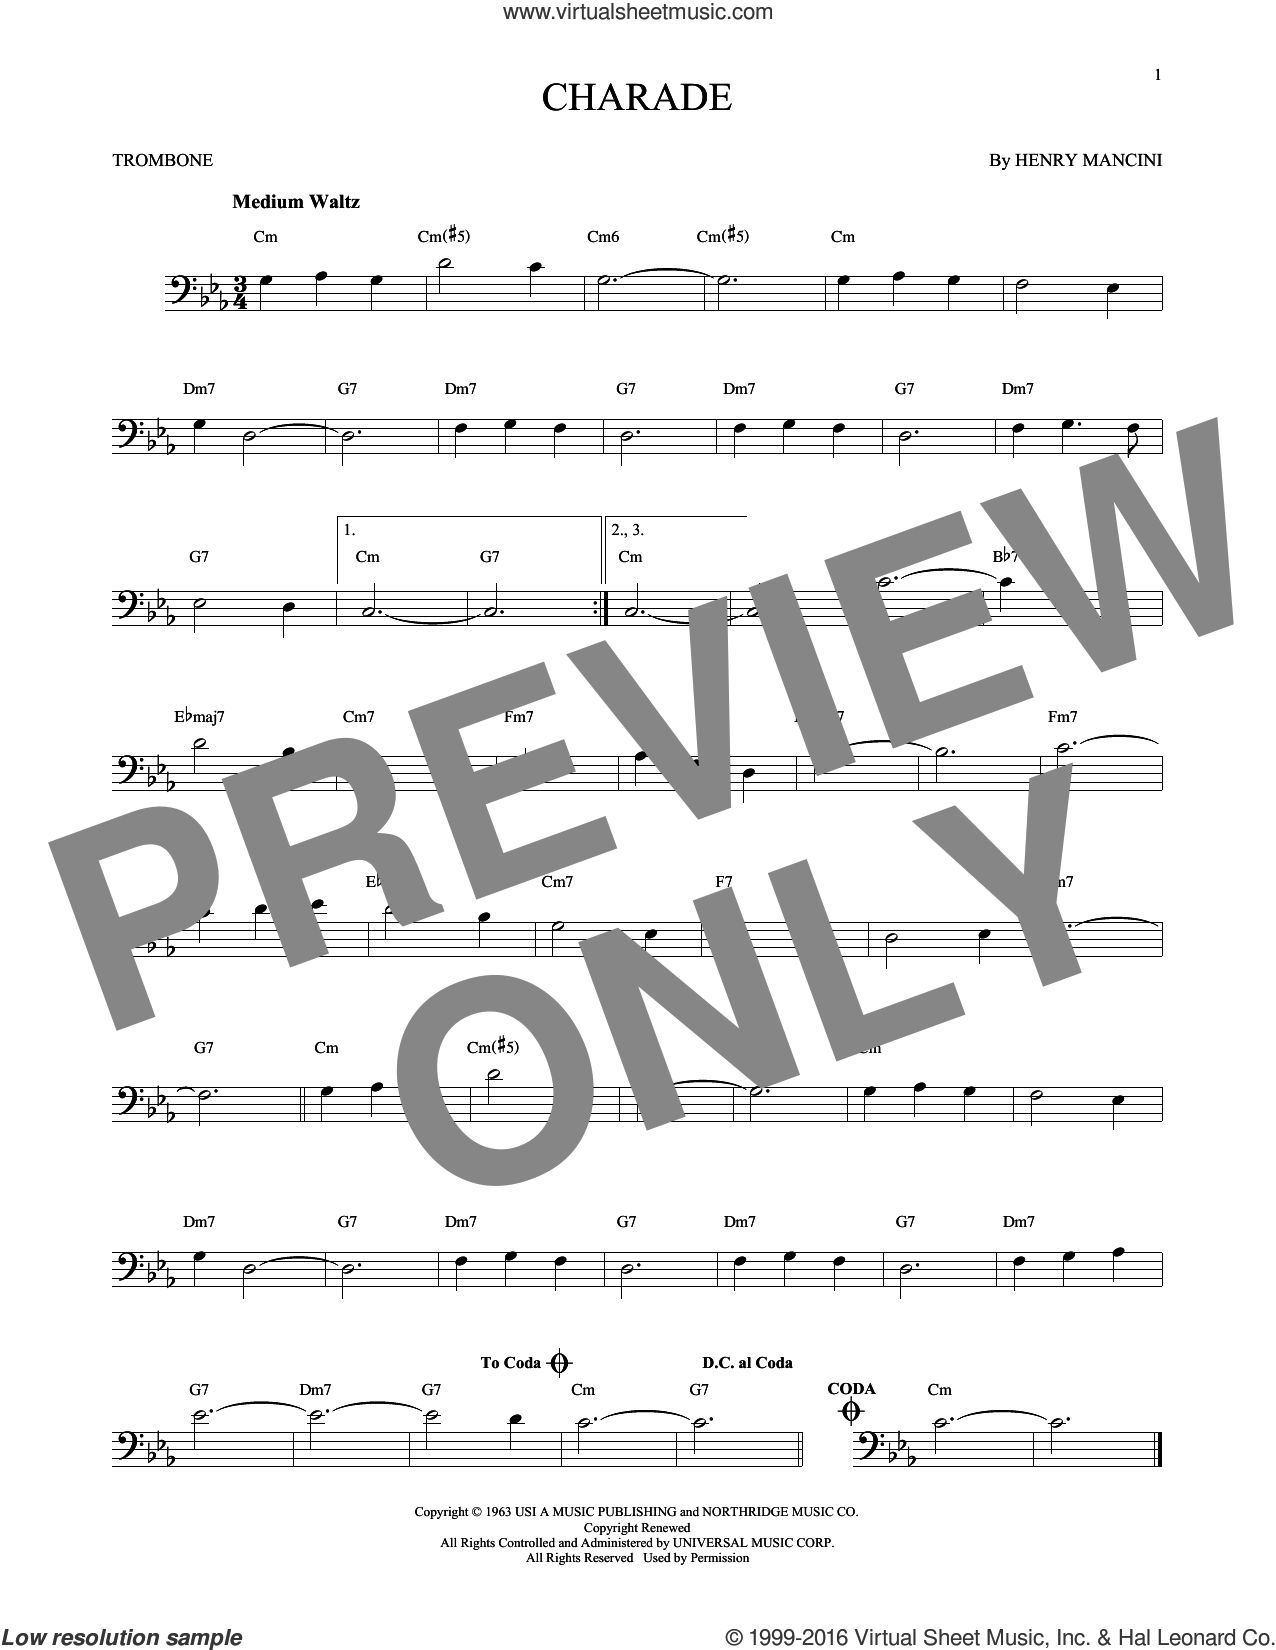 Charade sheet music for trombone solo by Henry Mancini, intermediate skill level